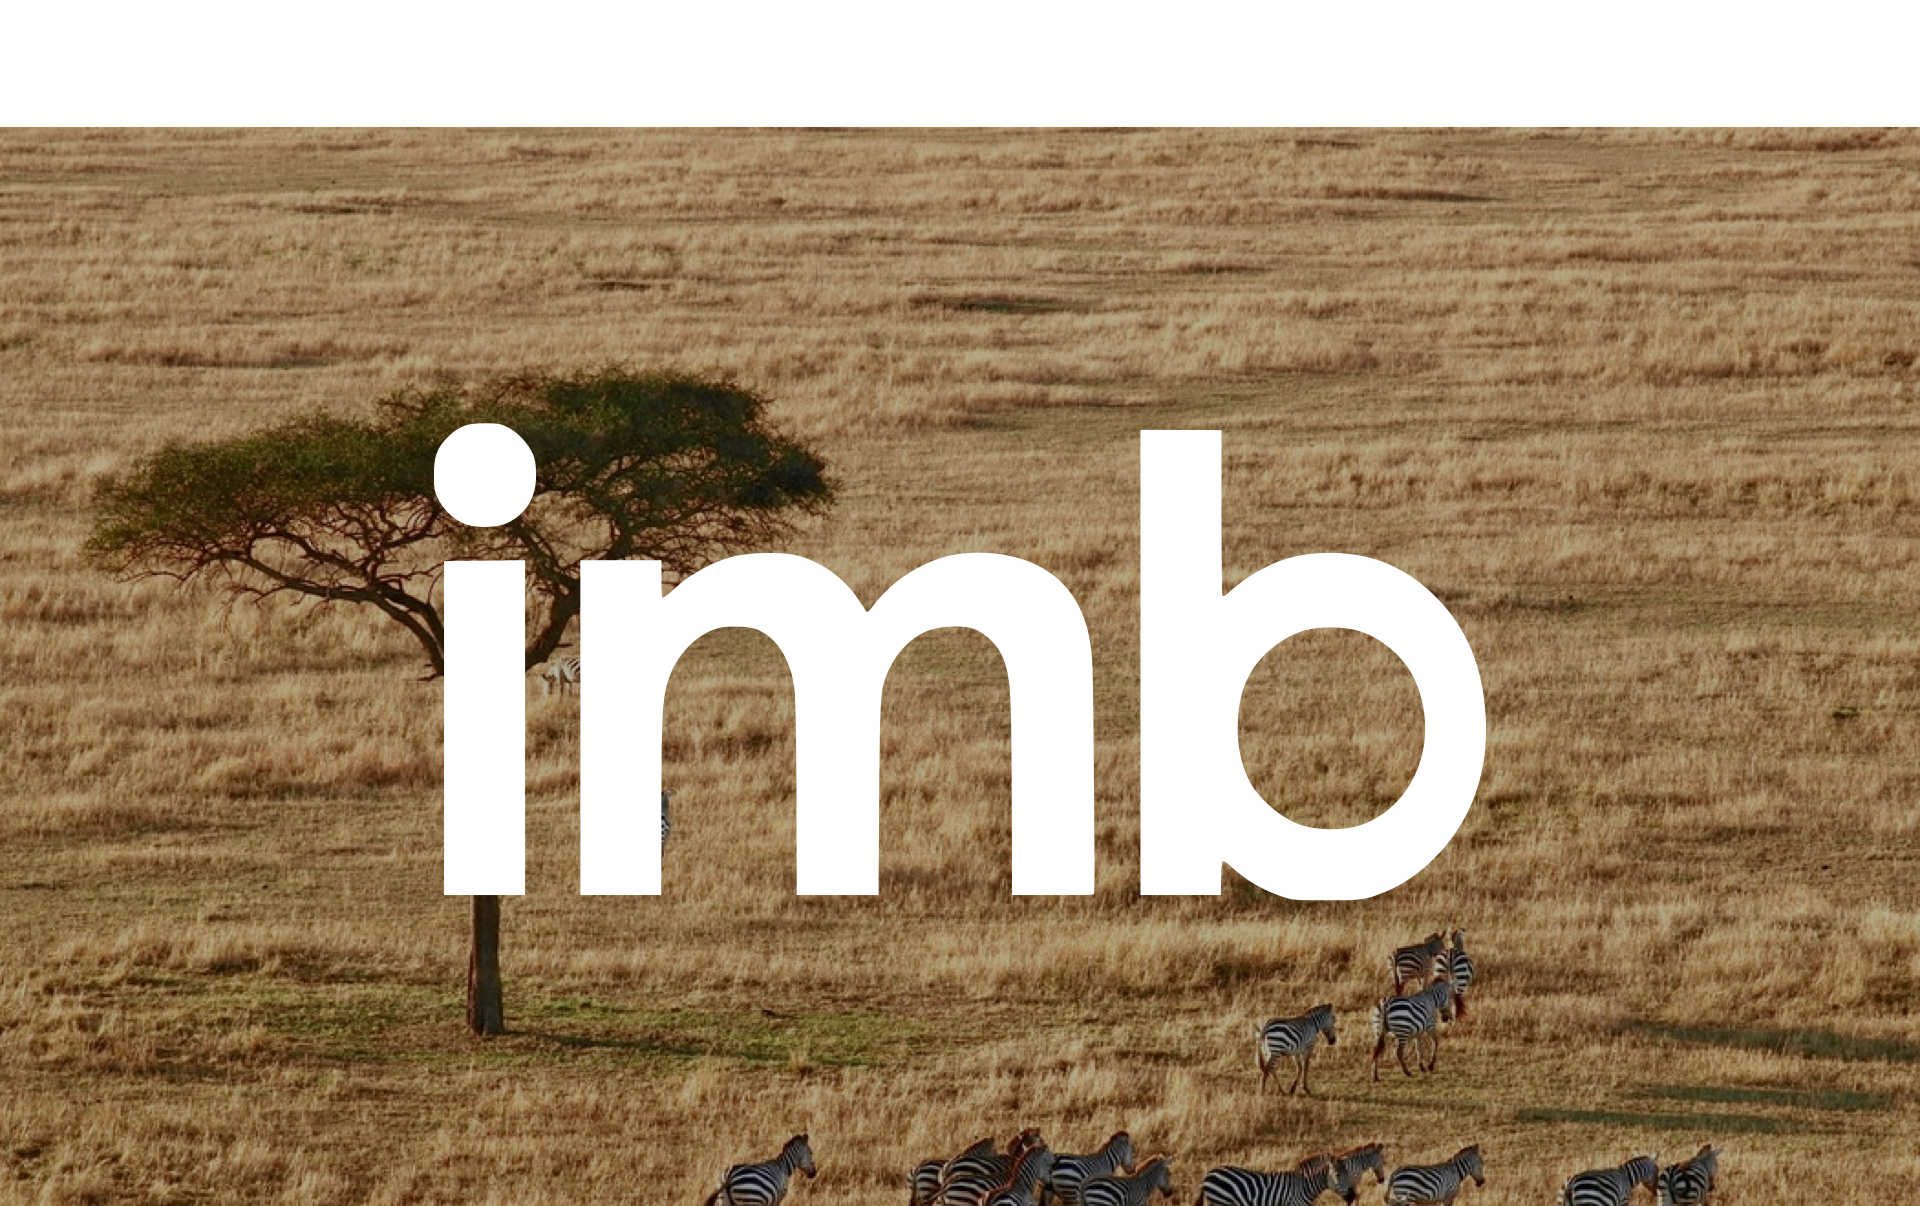 The Great Bend Cluster is part of the International Mission Board's church planting efforts in Sub-Saharan Africa. To learn more about the IMB, please visit imb.org -